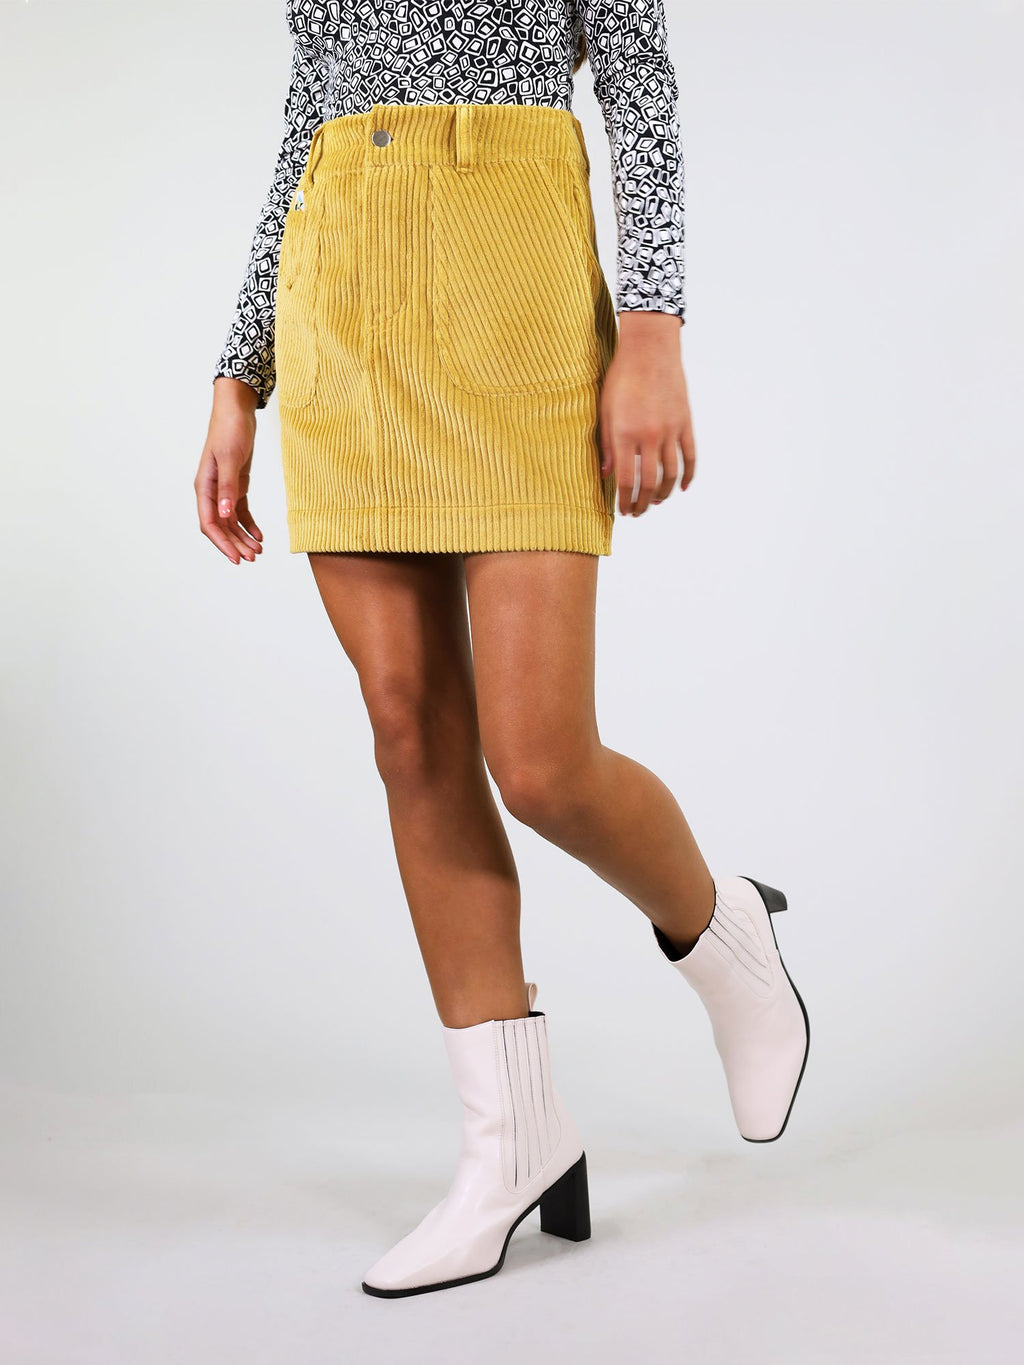 Corduroy skirt in mustard yellow, mini length. Large front and back pockets with belt loops and button fastening. Stretchy 100% cotton, perfect to tuck in a shirt and woven logo on the left pocket.